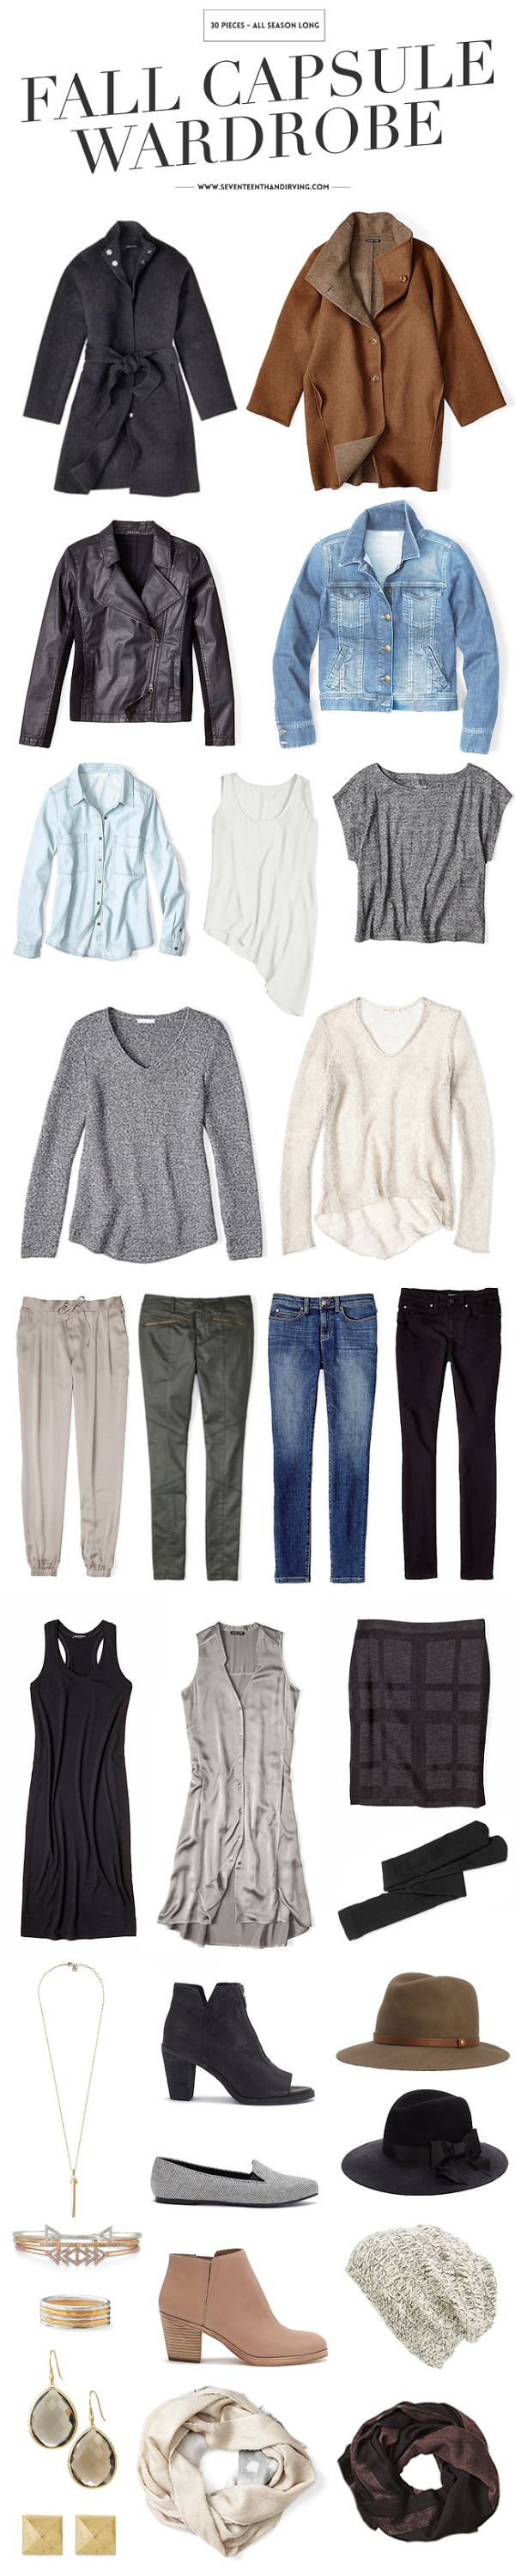 Seventeenth & Irving: CREATING A CAPSULE WARDROBE FOR FALL